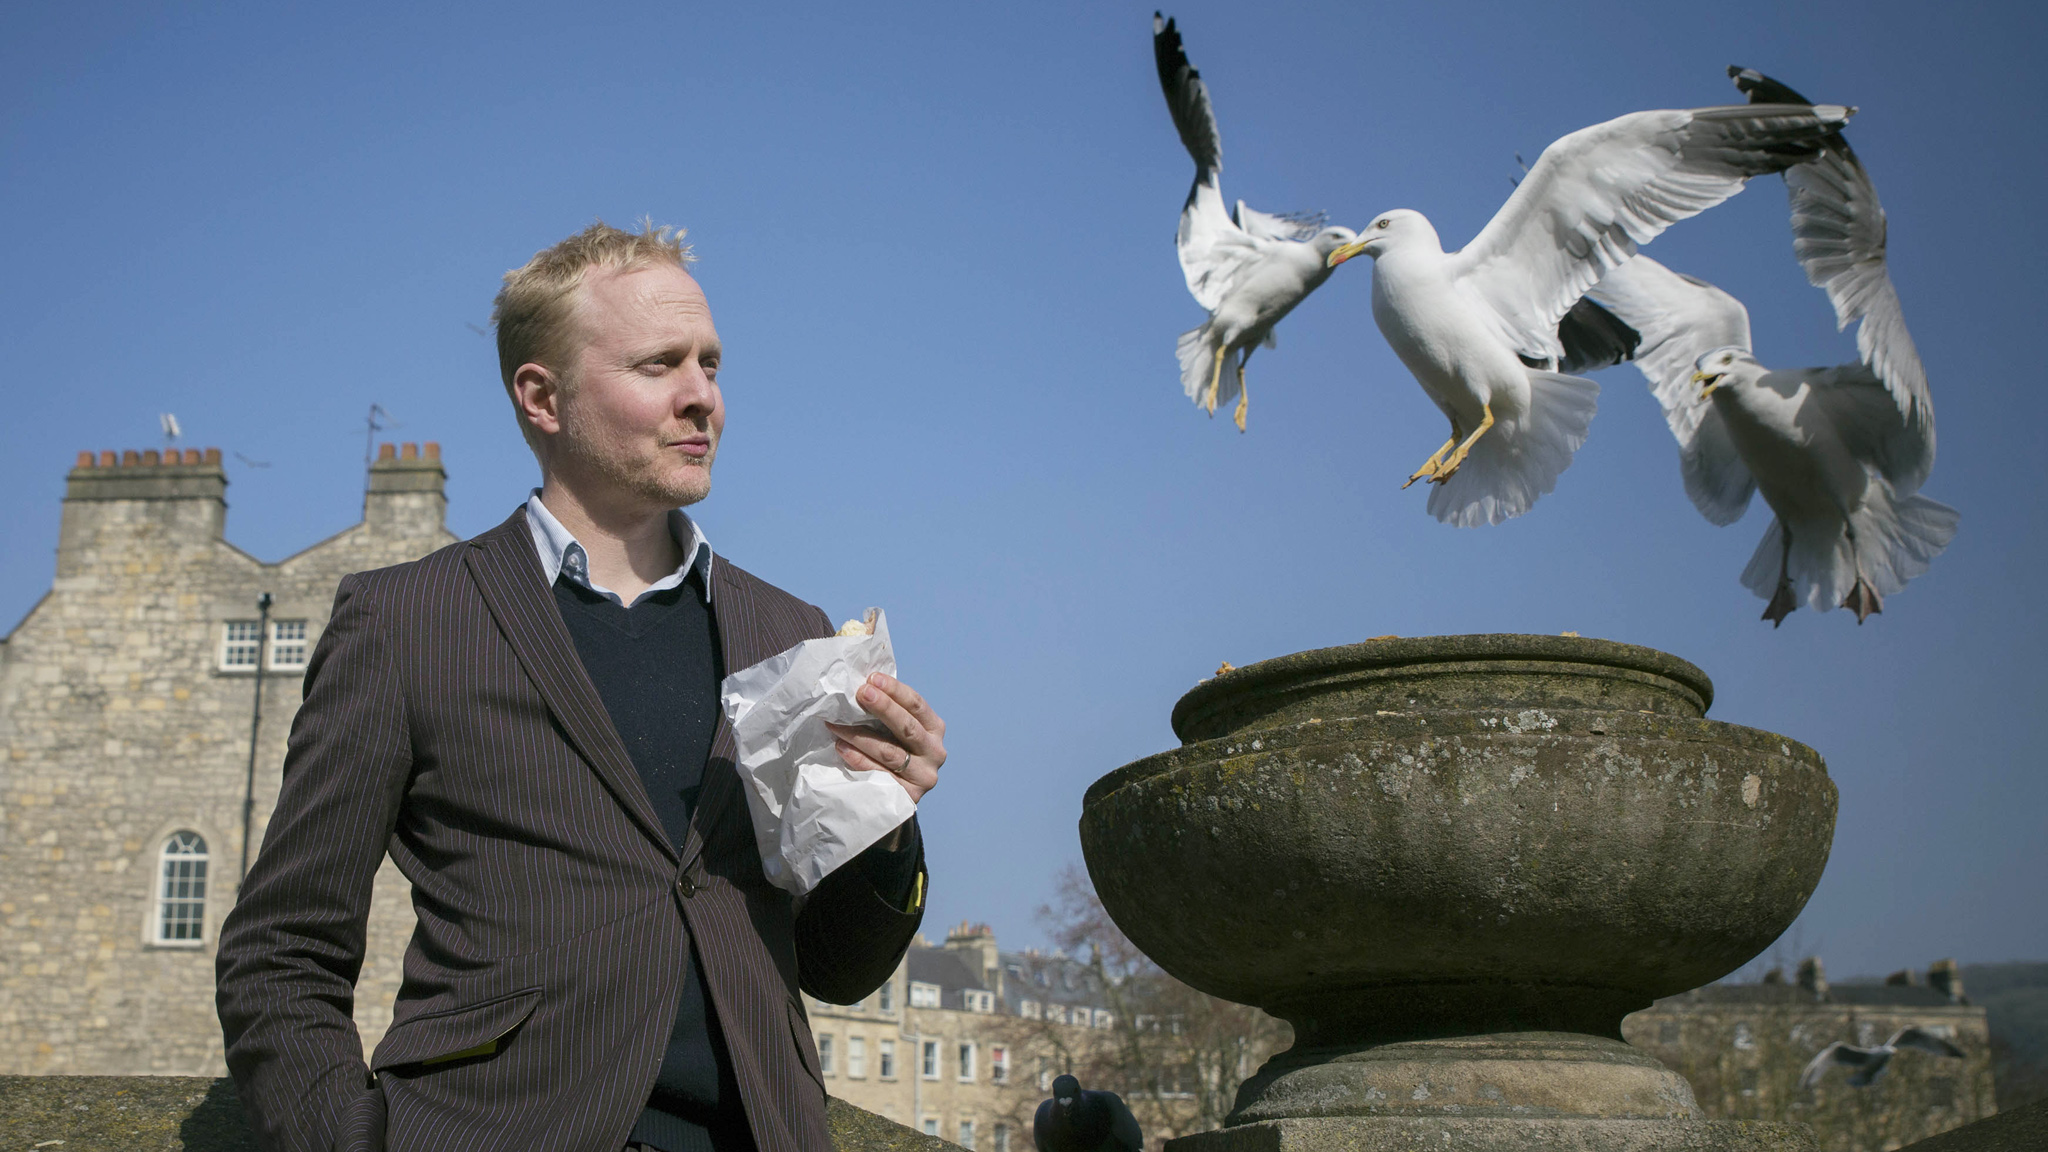 Election feathers fly over Bath's 'vermin on wings'   Financial Times